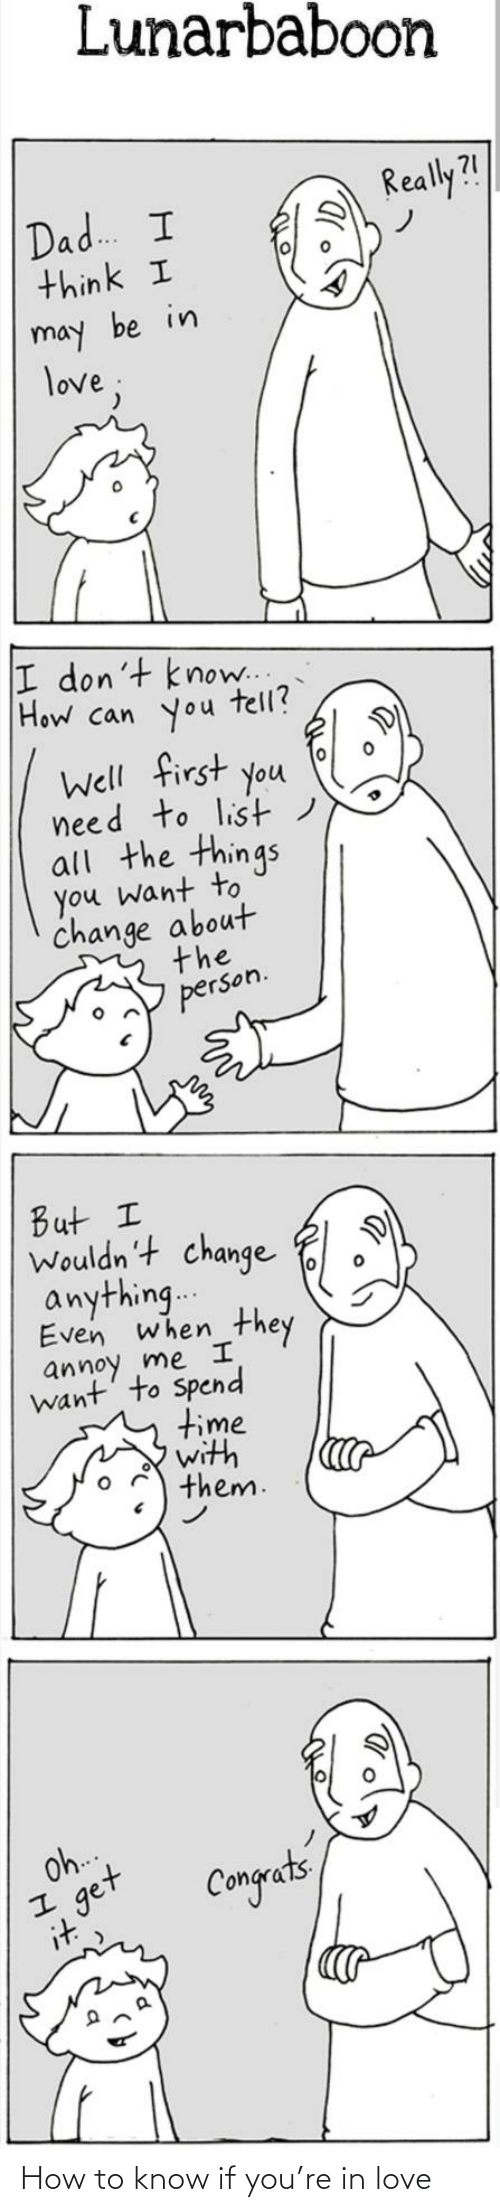 Dad, Love, and How To: Lunarbaboon  Really?!  Dad. I  think I  may be in  love;  I don't know..  How can you  tell?  Well first you  need to list)  all the things  you want to  change about  the  person.  But I  Wouldn't change  anything..  Even when  they  annoy me I  want' to Spend  time  with  them.  Oh.  get  it  Congets How to know if you're in love